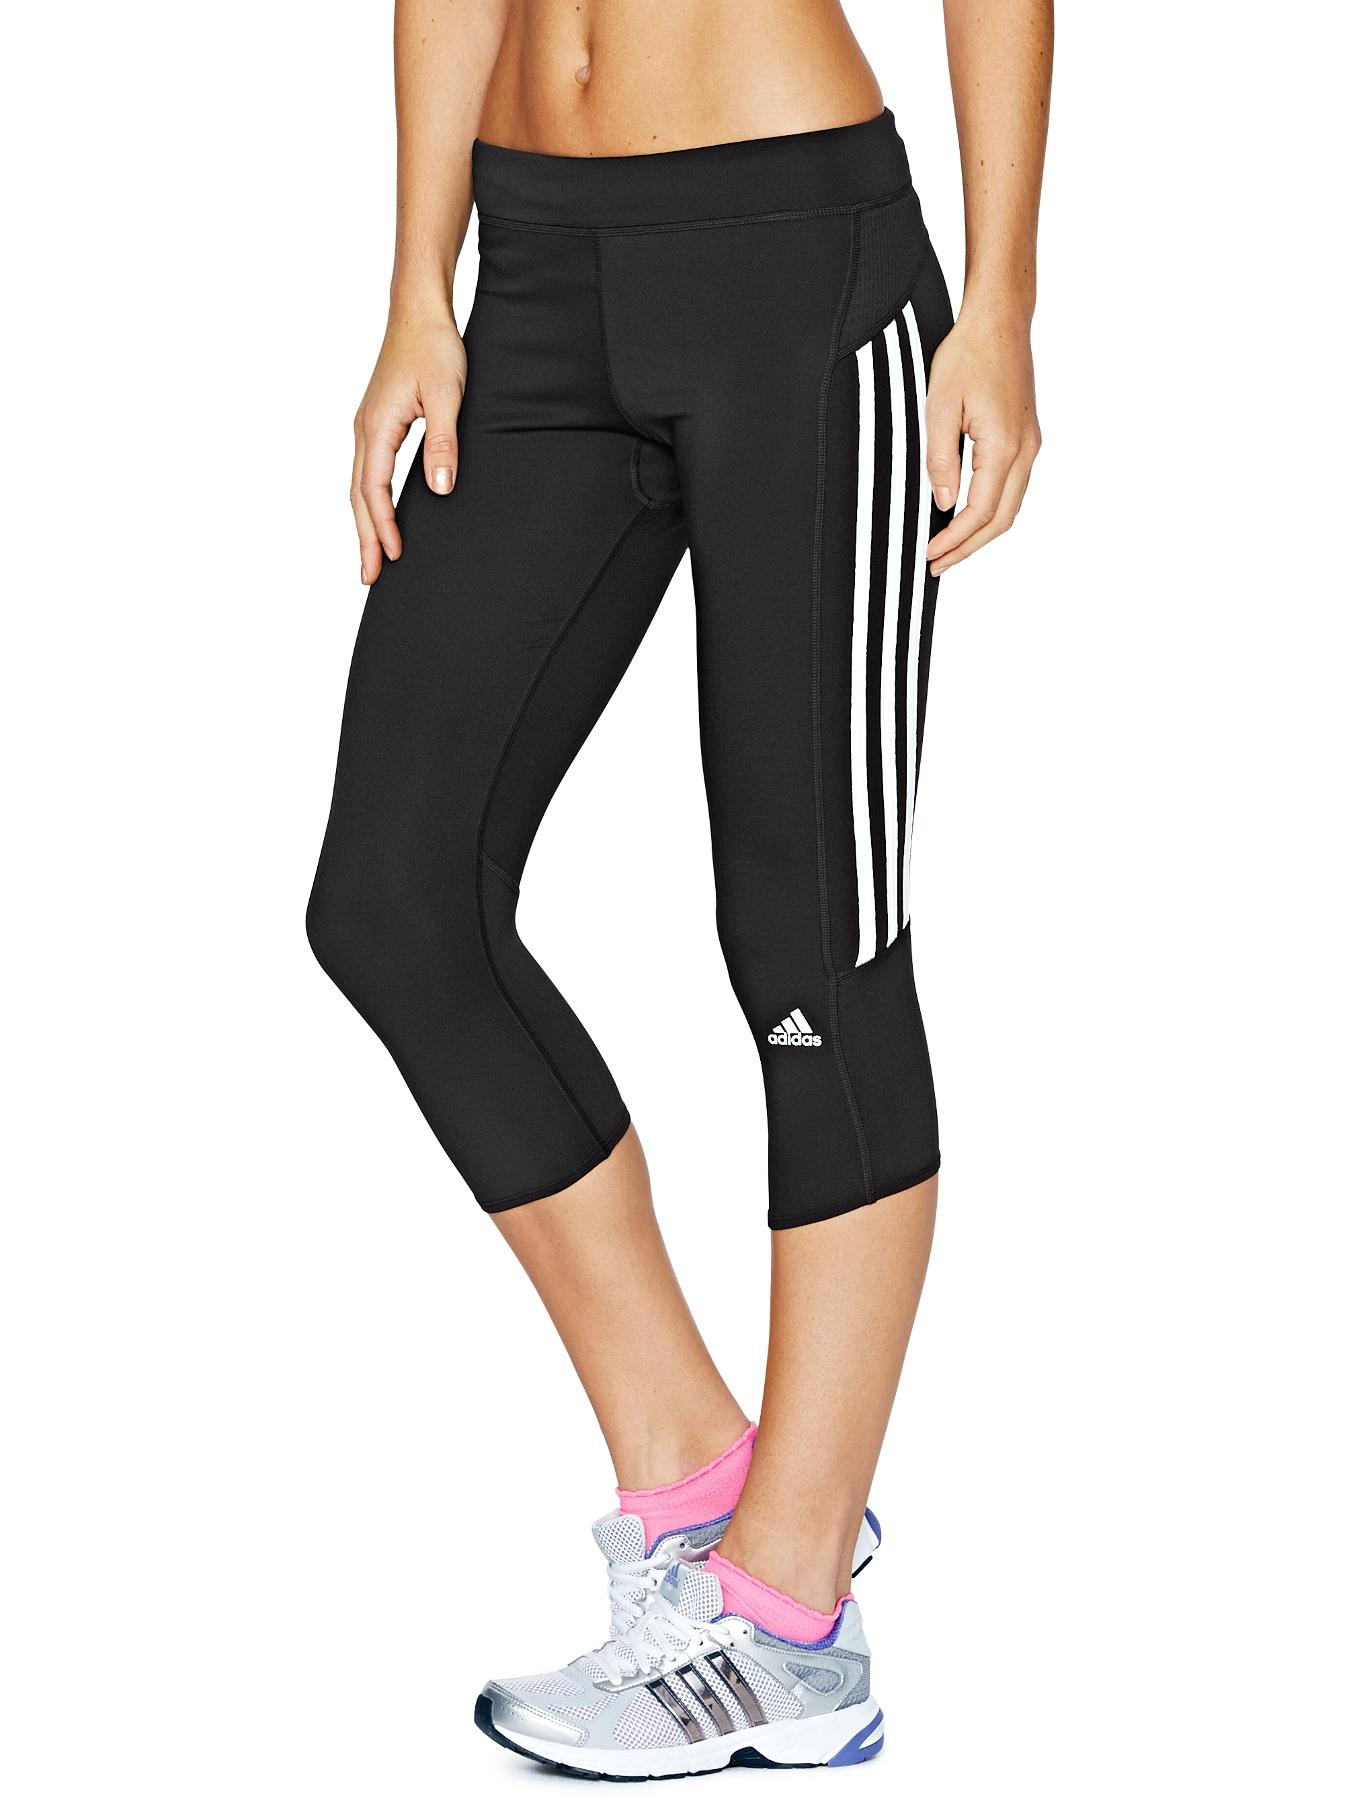 adidas Response 3/4 Tights - Black, Black